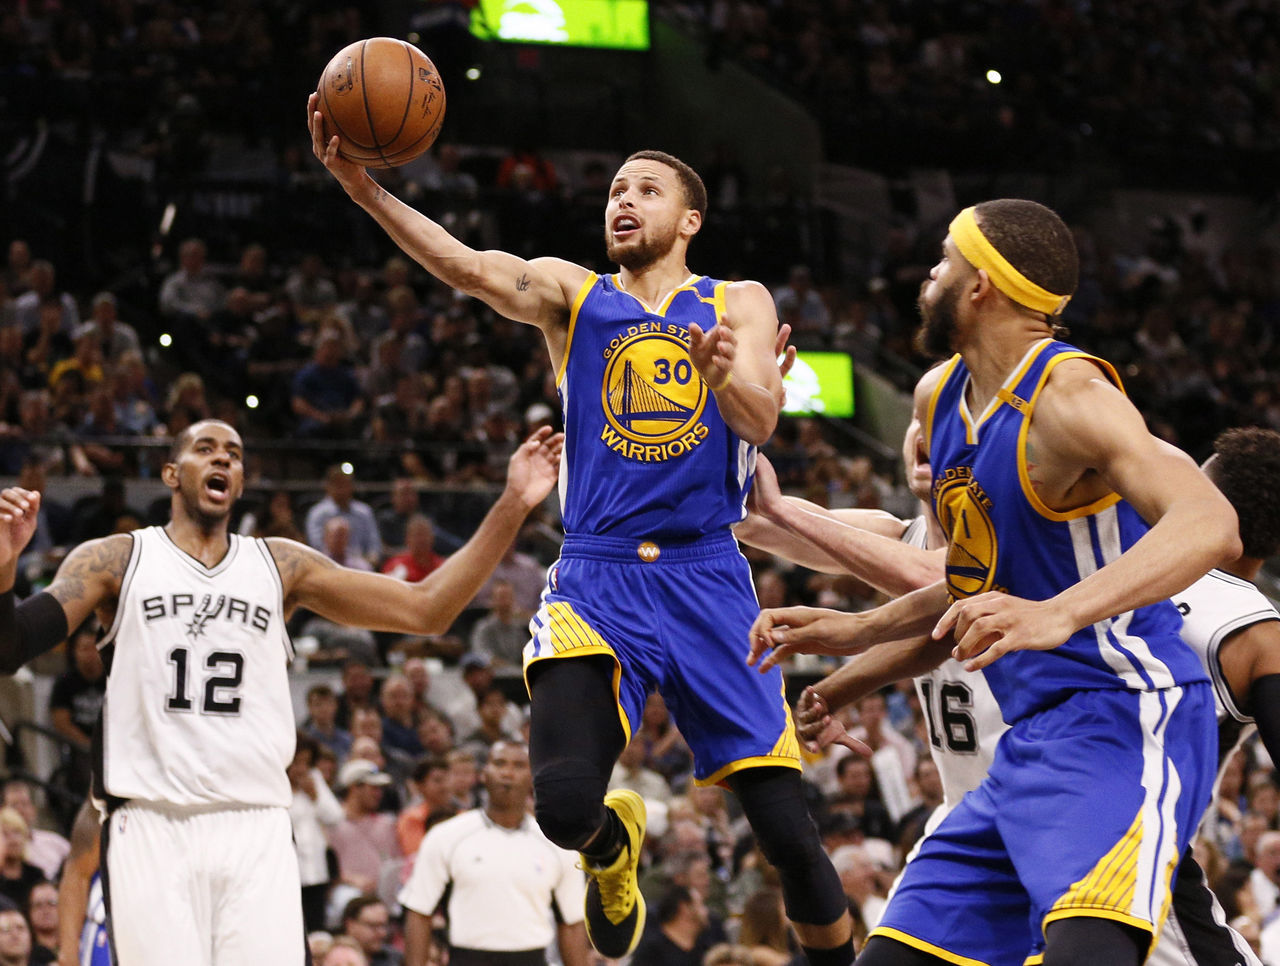 Cropped_2017-03-30t033531z_1326170673_nocid_rtrmadp_3_nba-golden-state-warriors-at-san-antonio-spurs